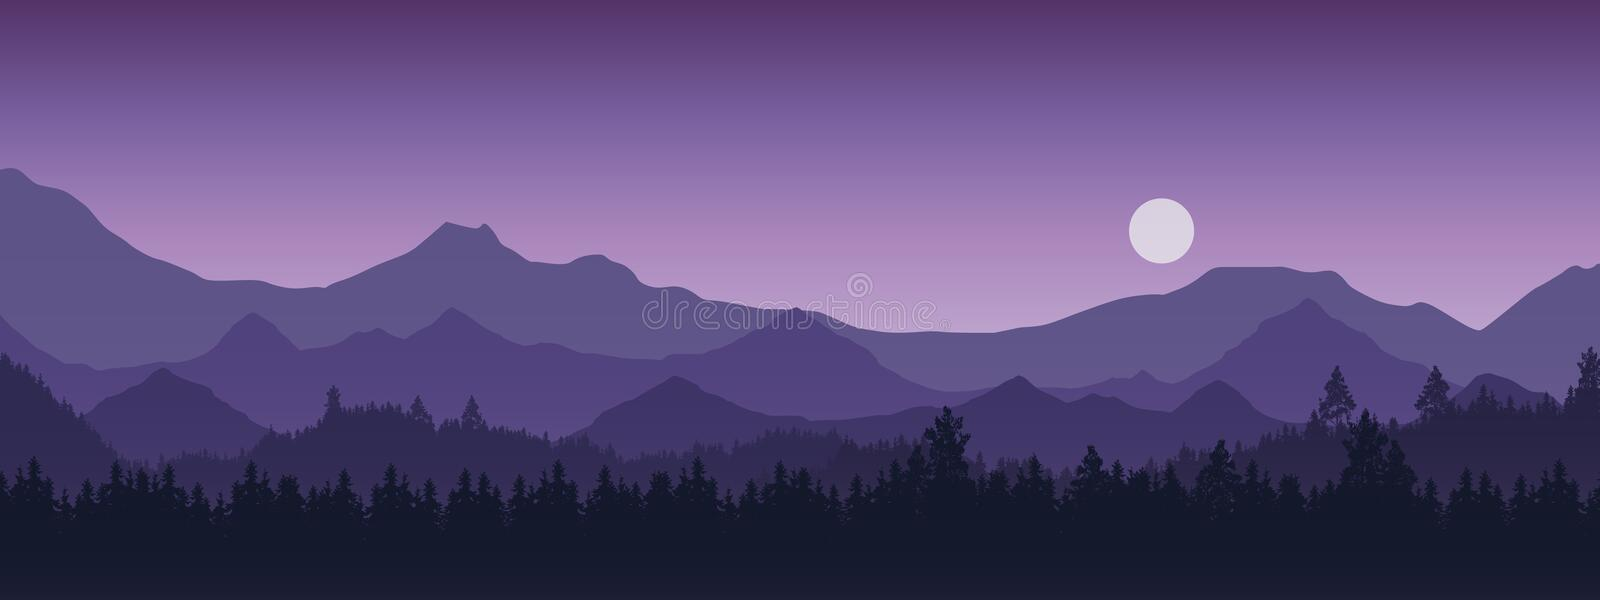 Wide realistic illustration of mountain landscape with forest and trees. Purple night sky with moon or sun, vector stock illustration